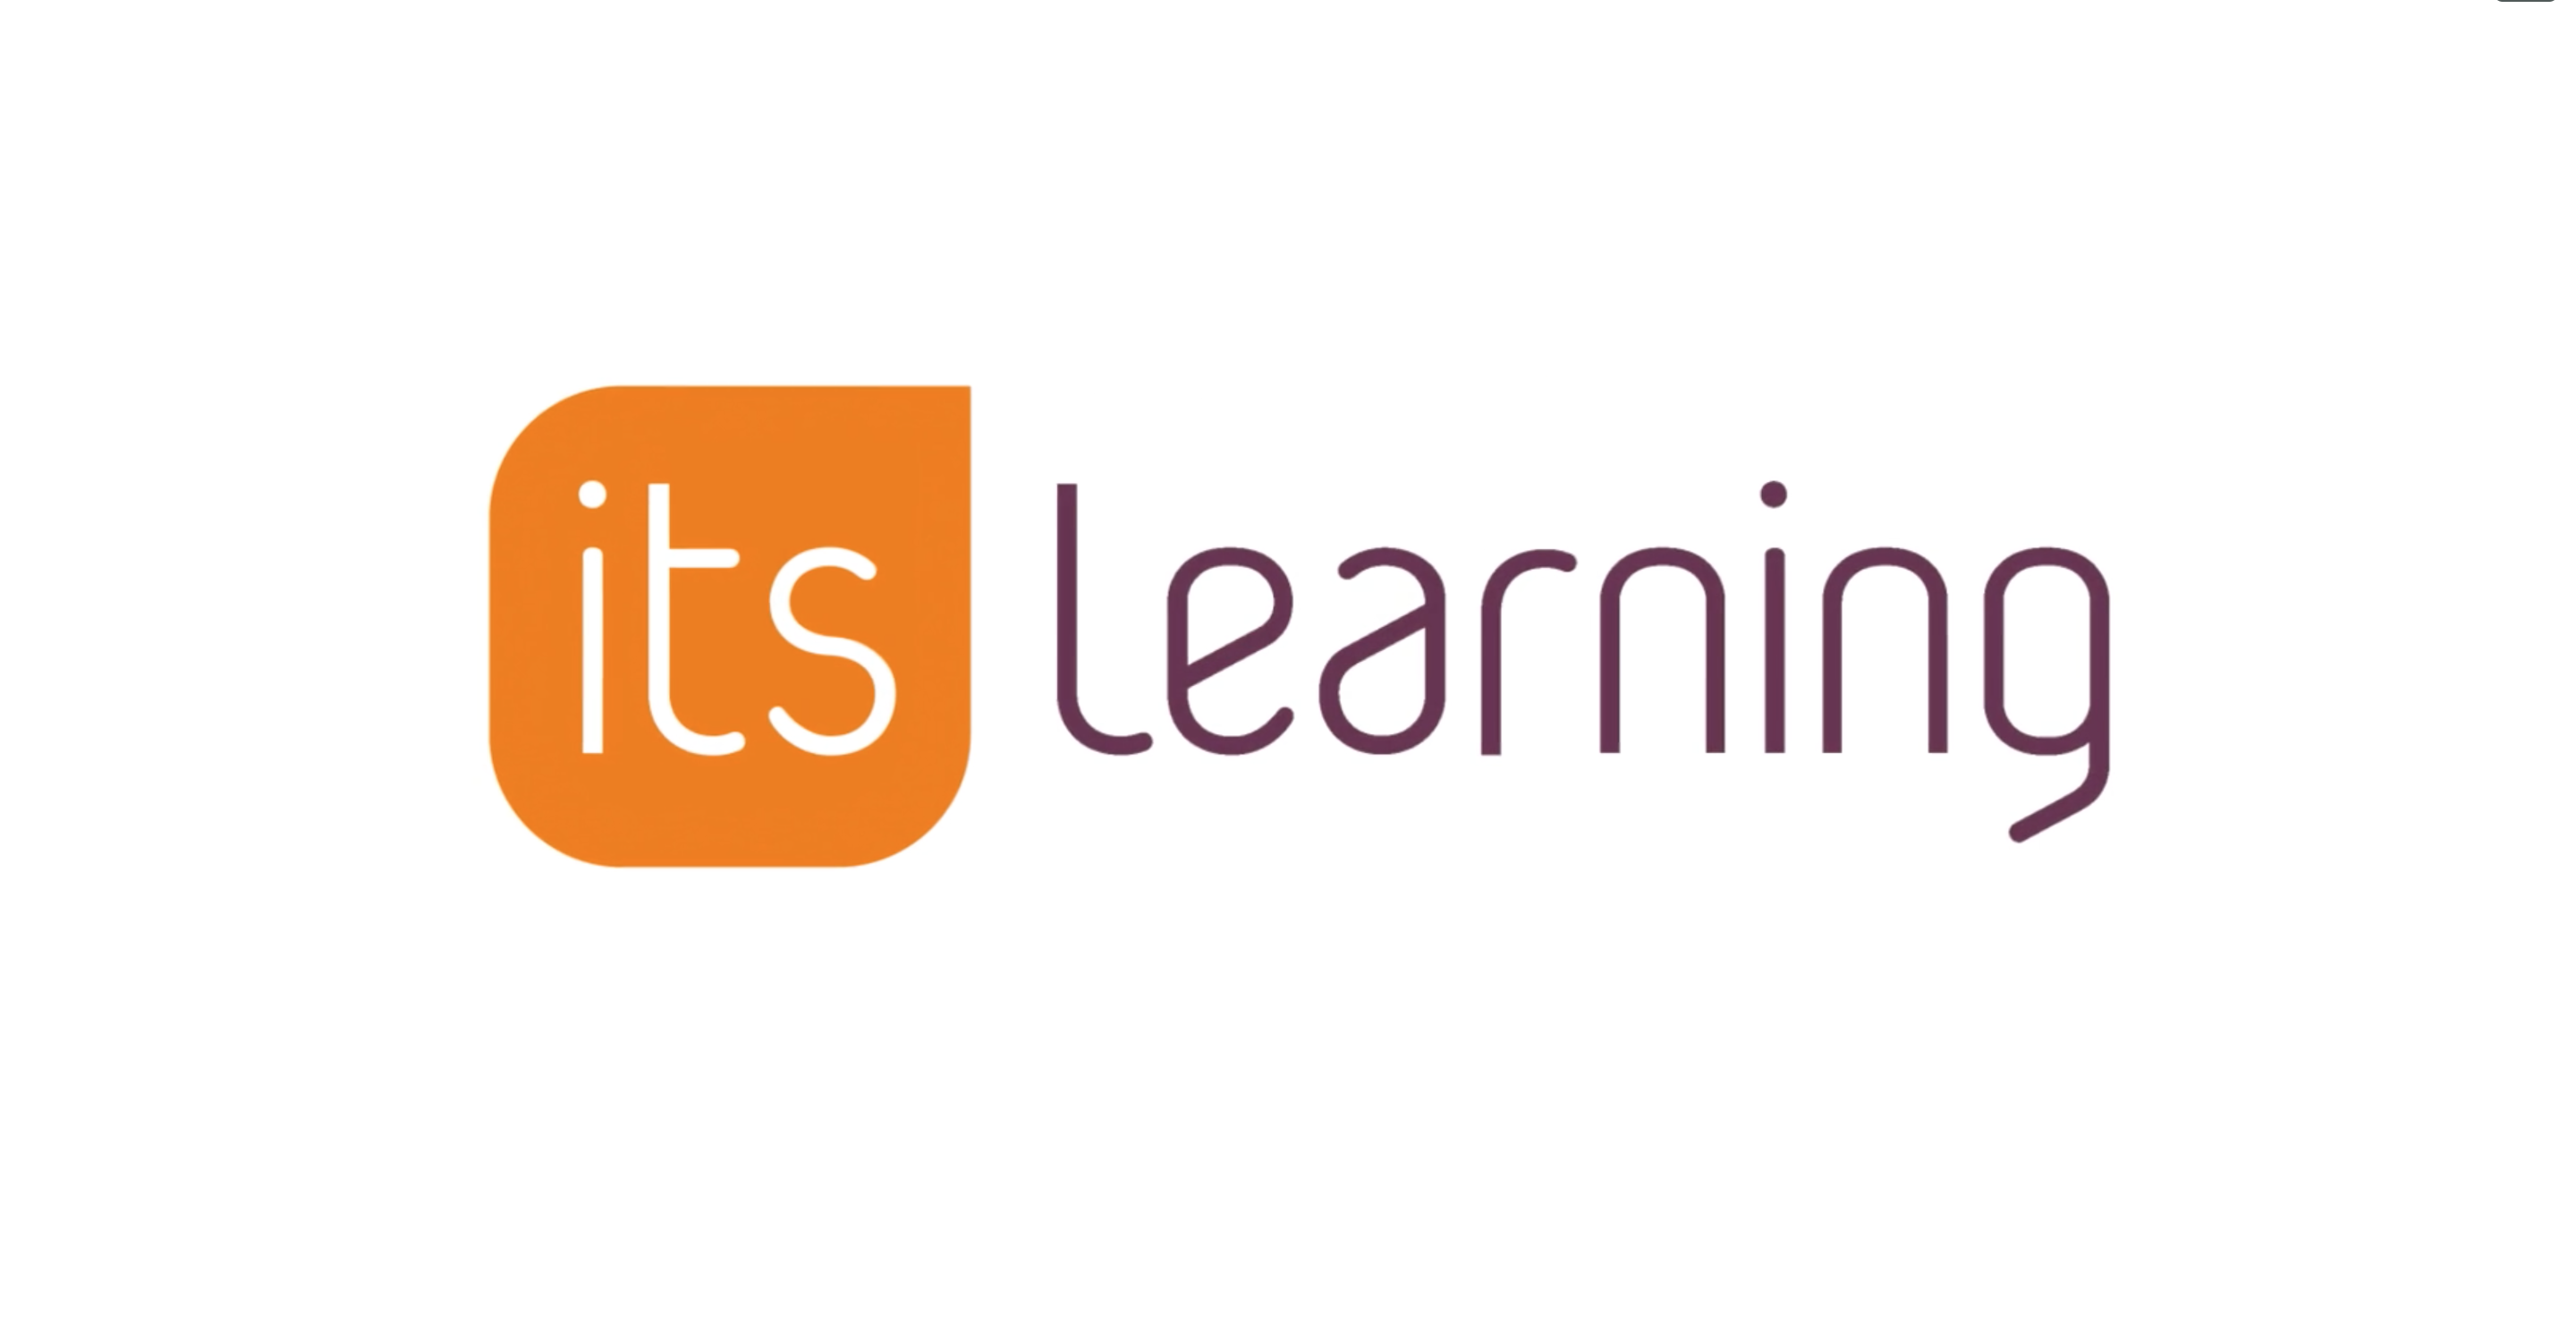 itslearning